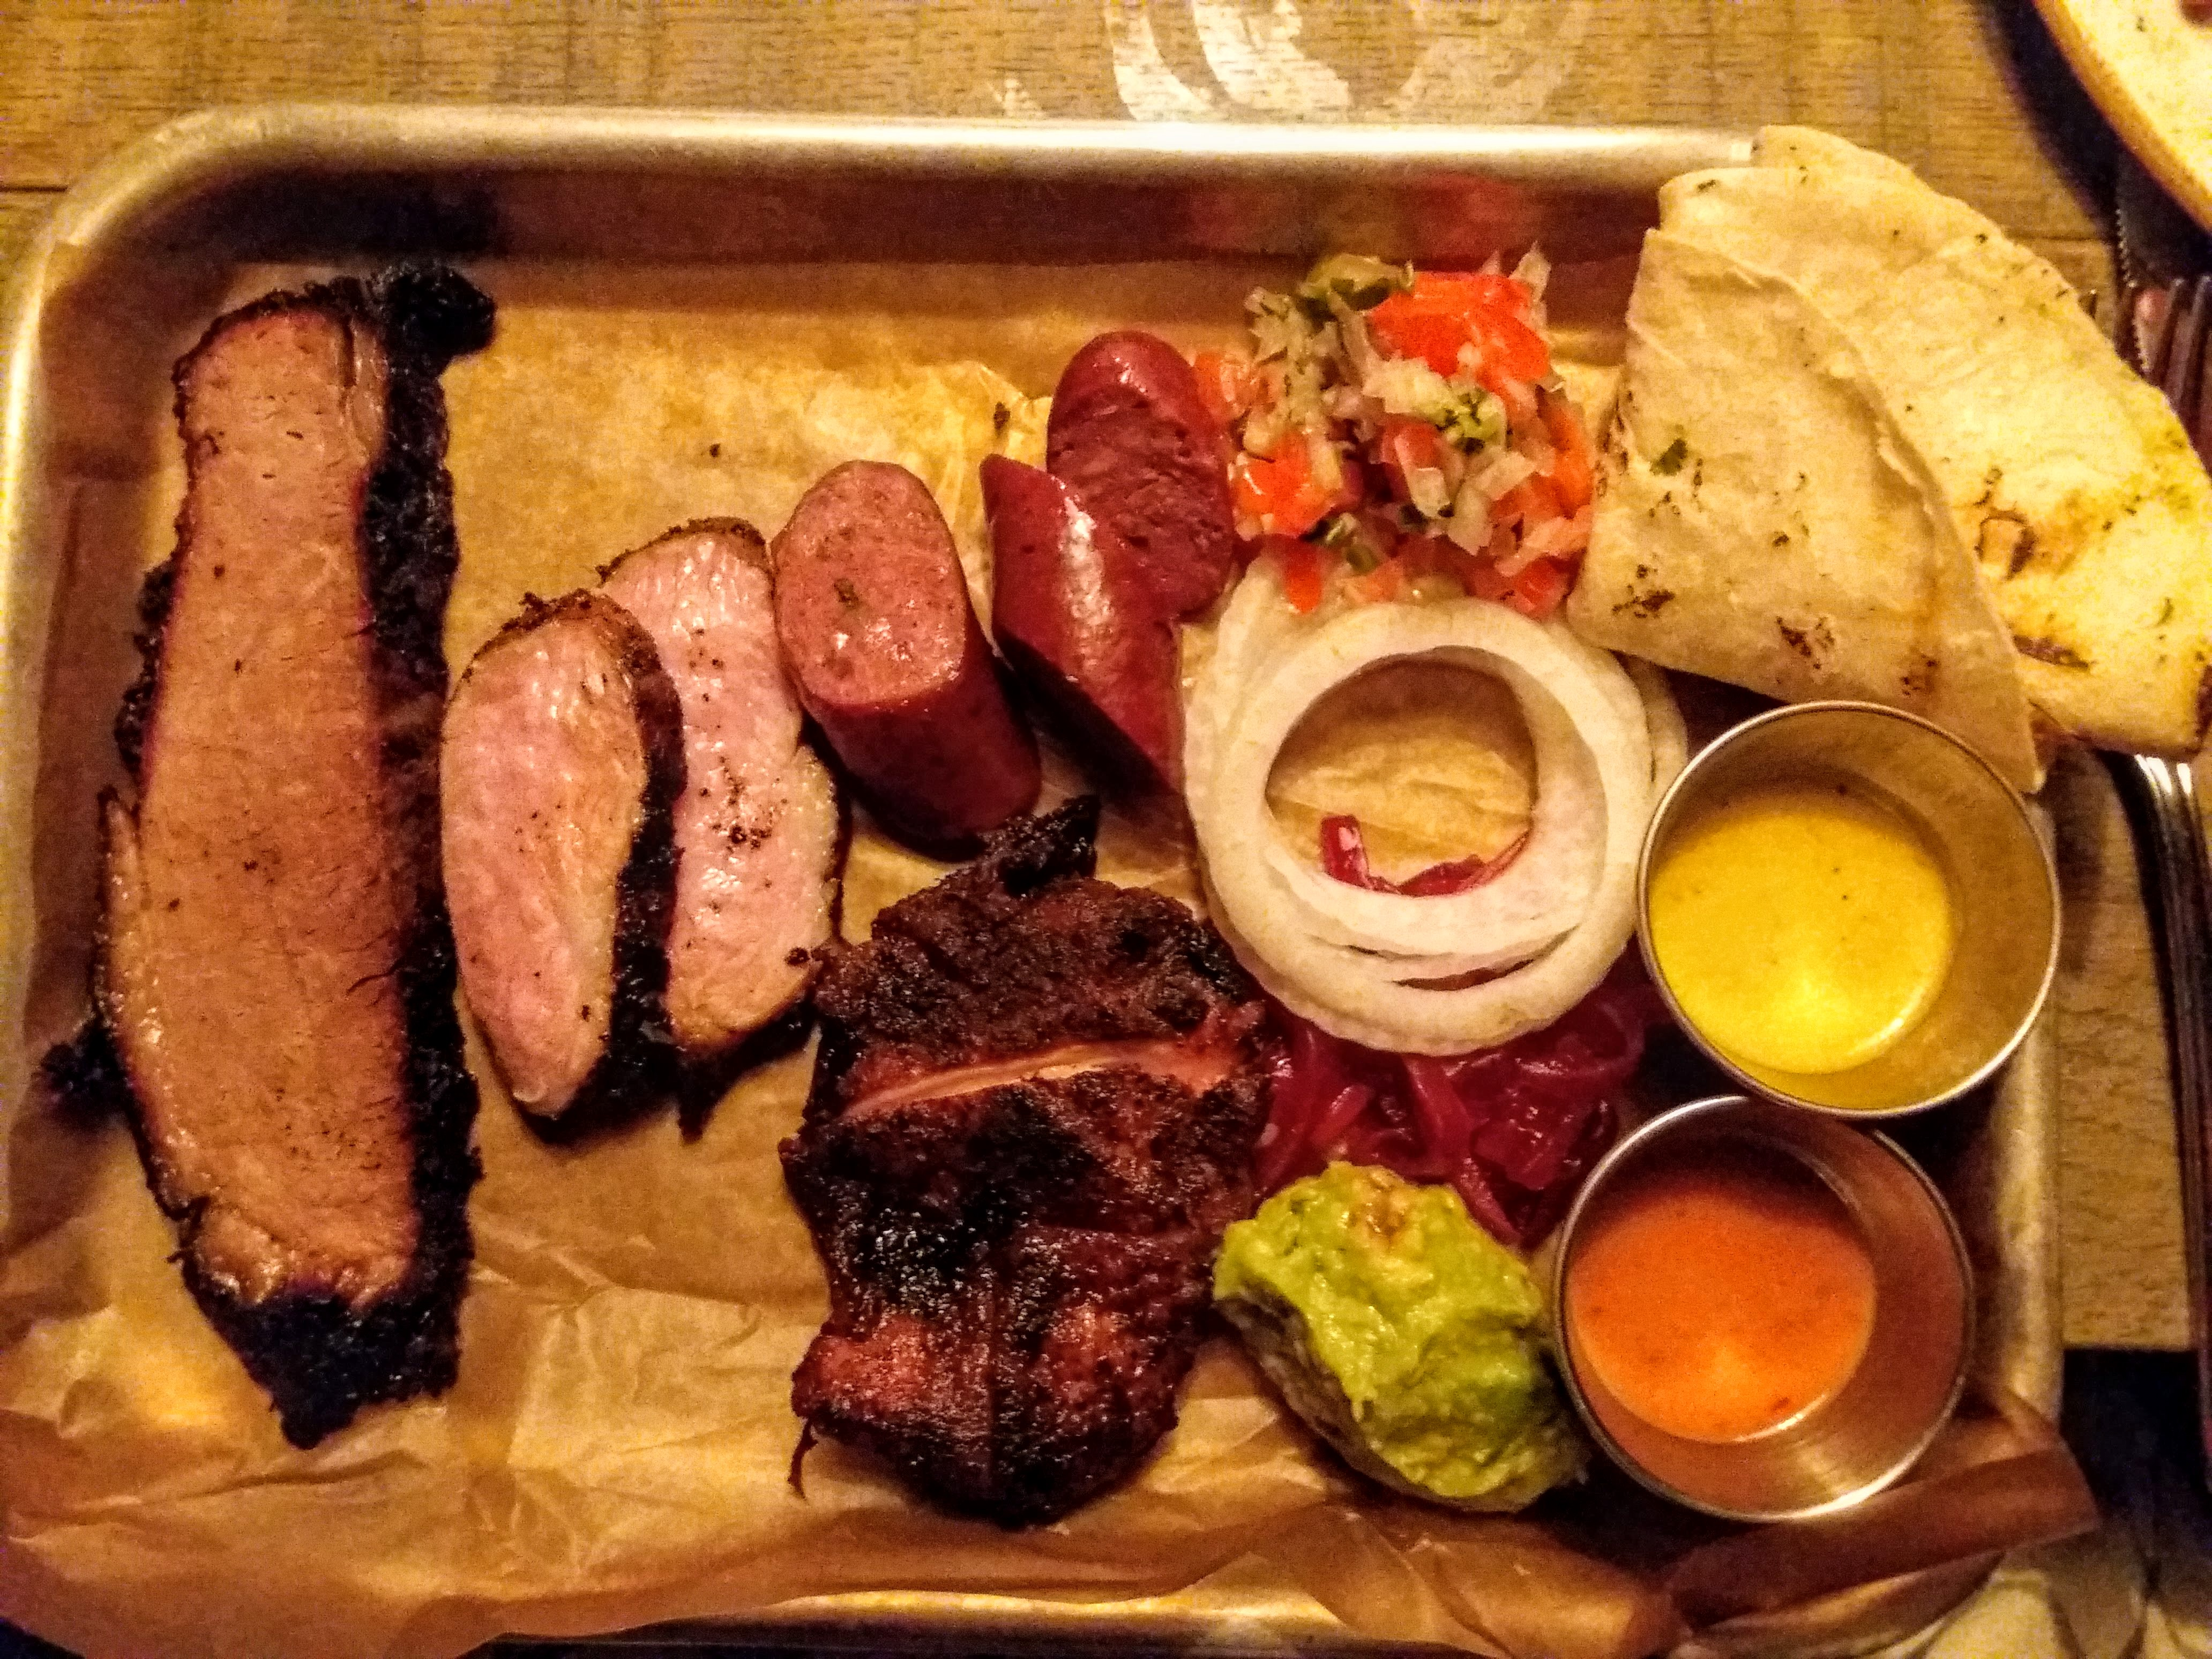 TGNAD - Austin Food Works BBQ platter